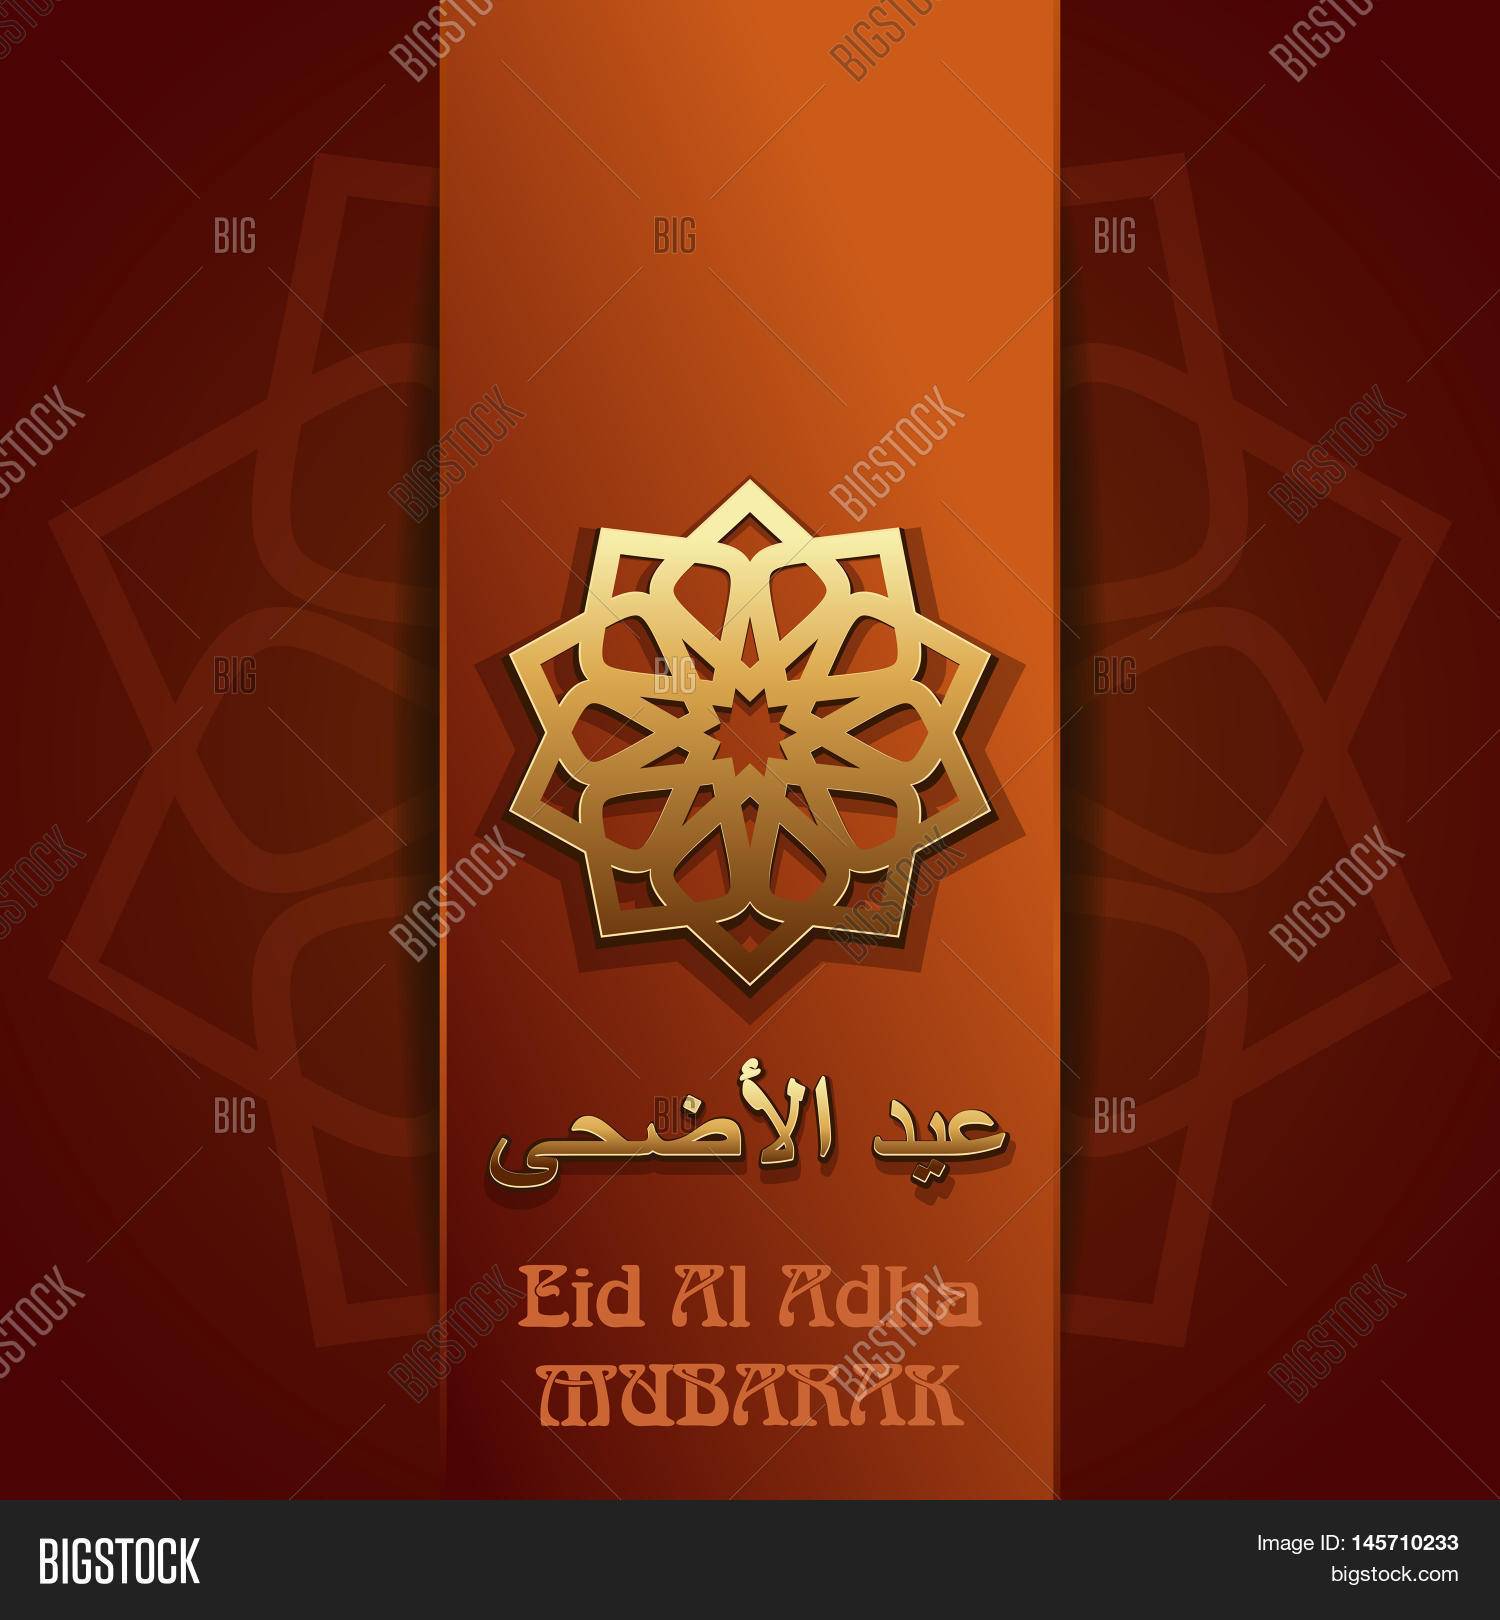 Greeting Card Muslim Image Photo Free Trial Bigstock